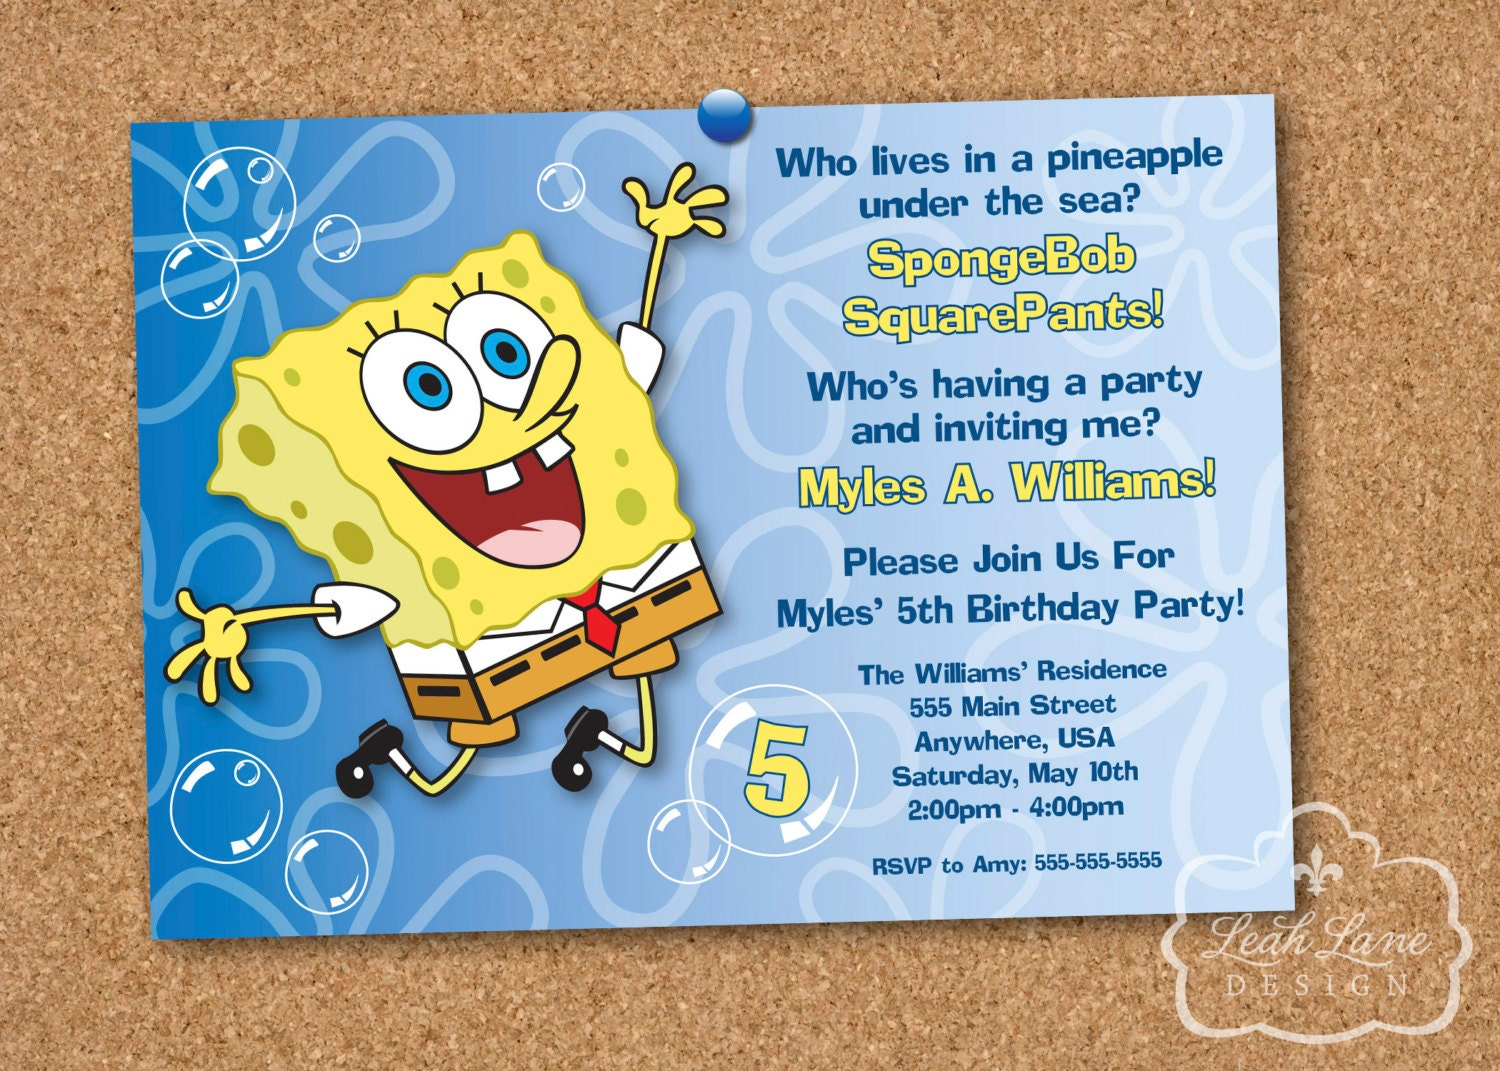 SpongeBob SquarePants Birthday Party Printable Invitation